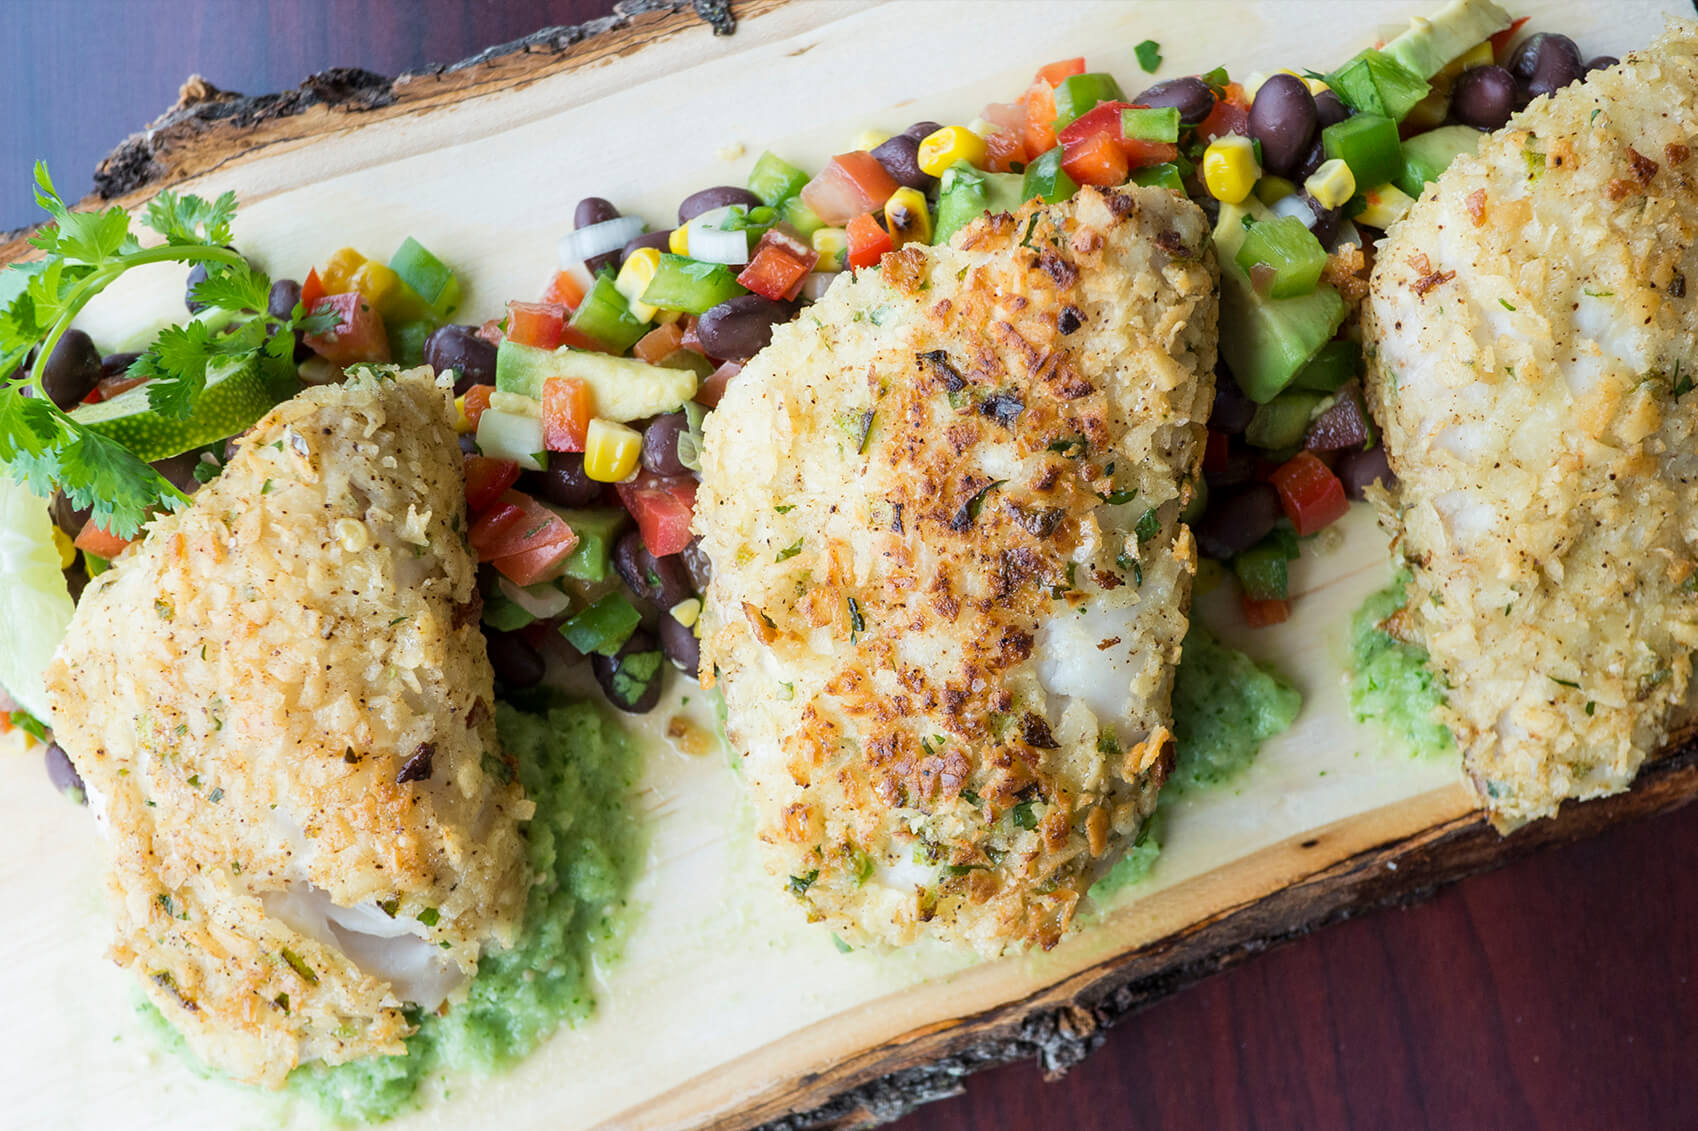 Tortilla crusted tilapia is a fun take on a fish fry.